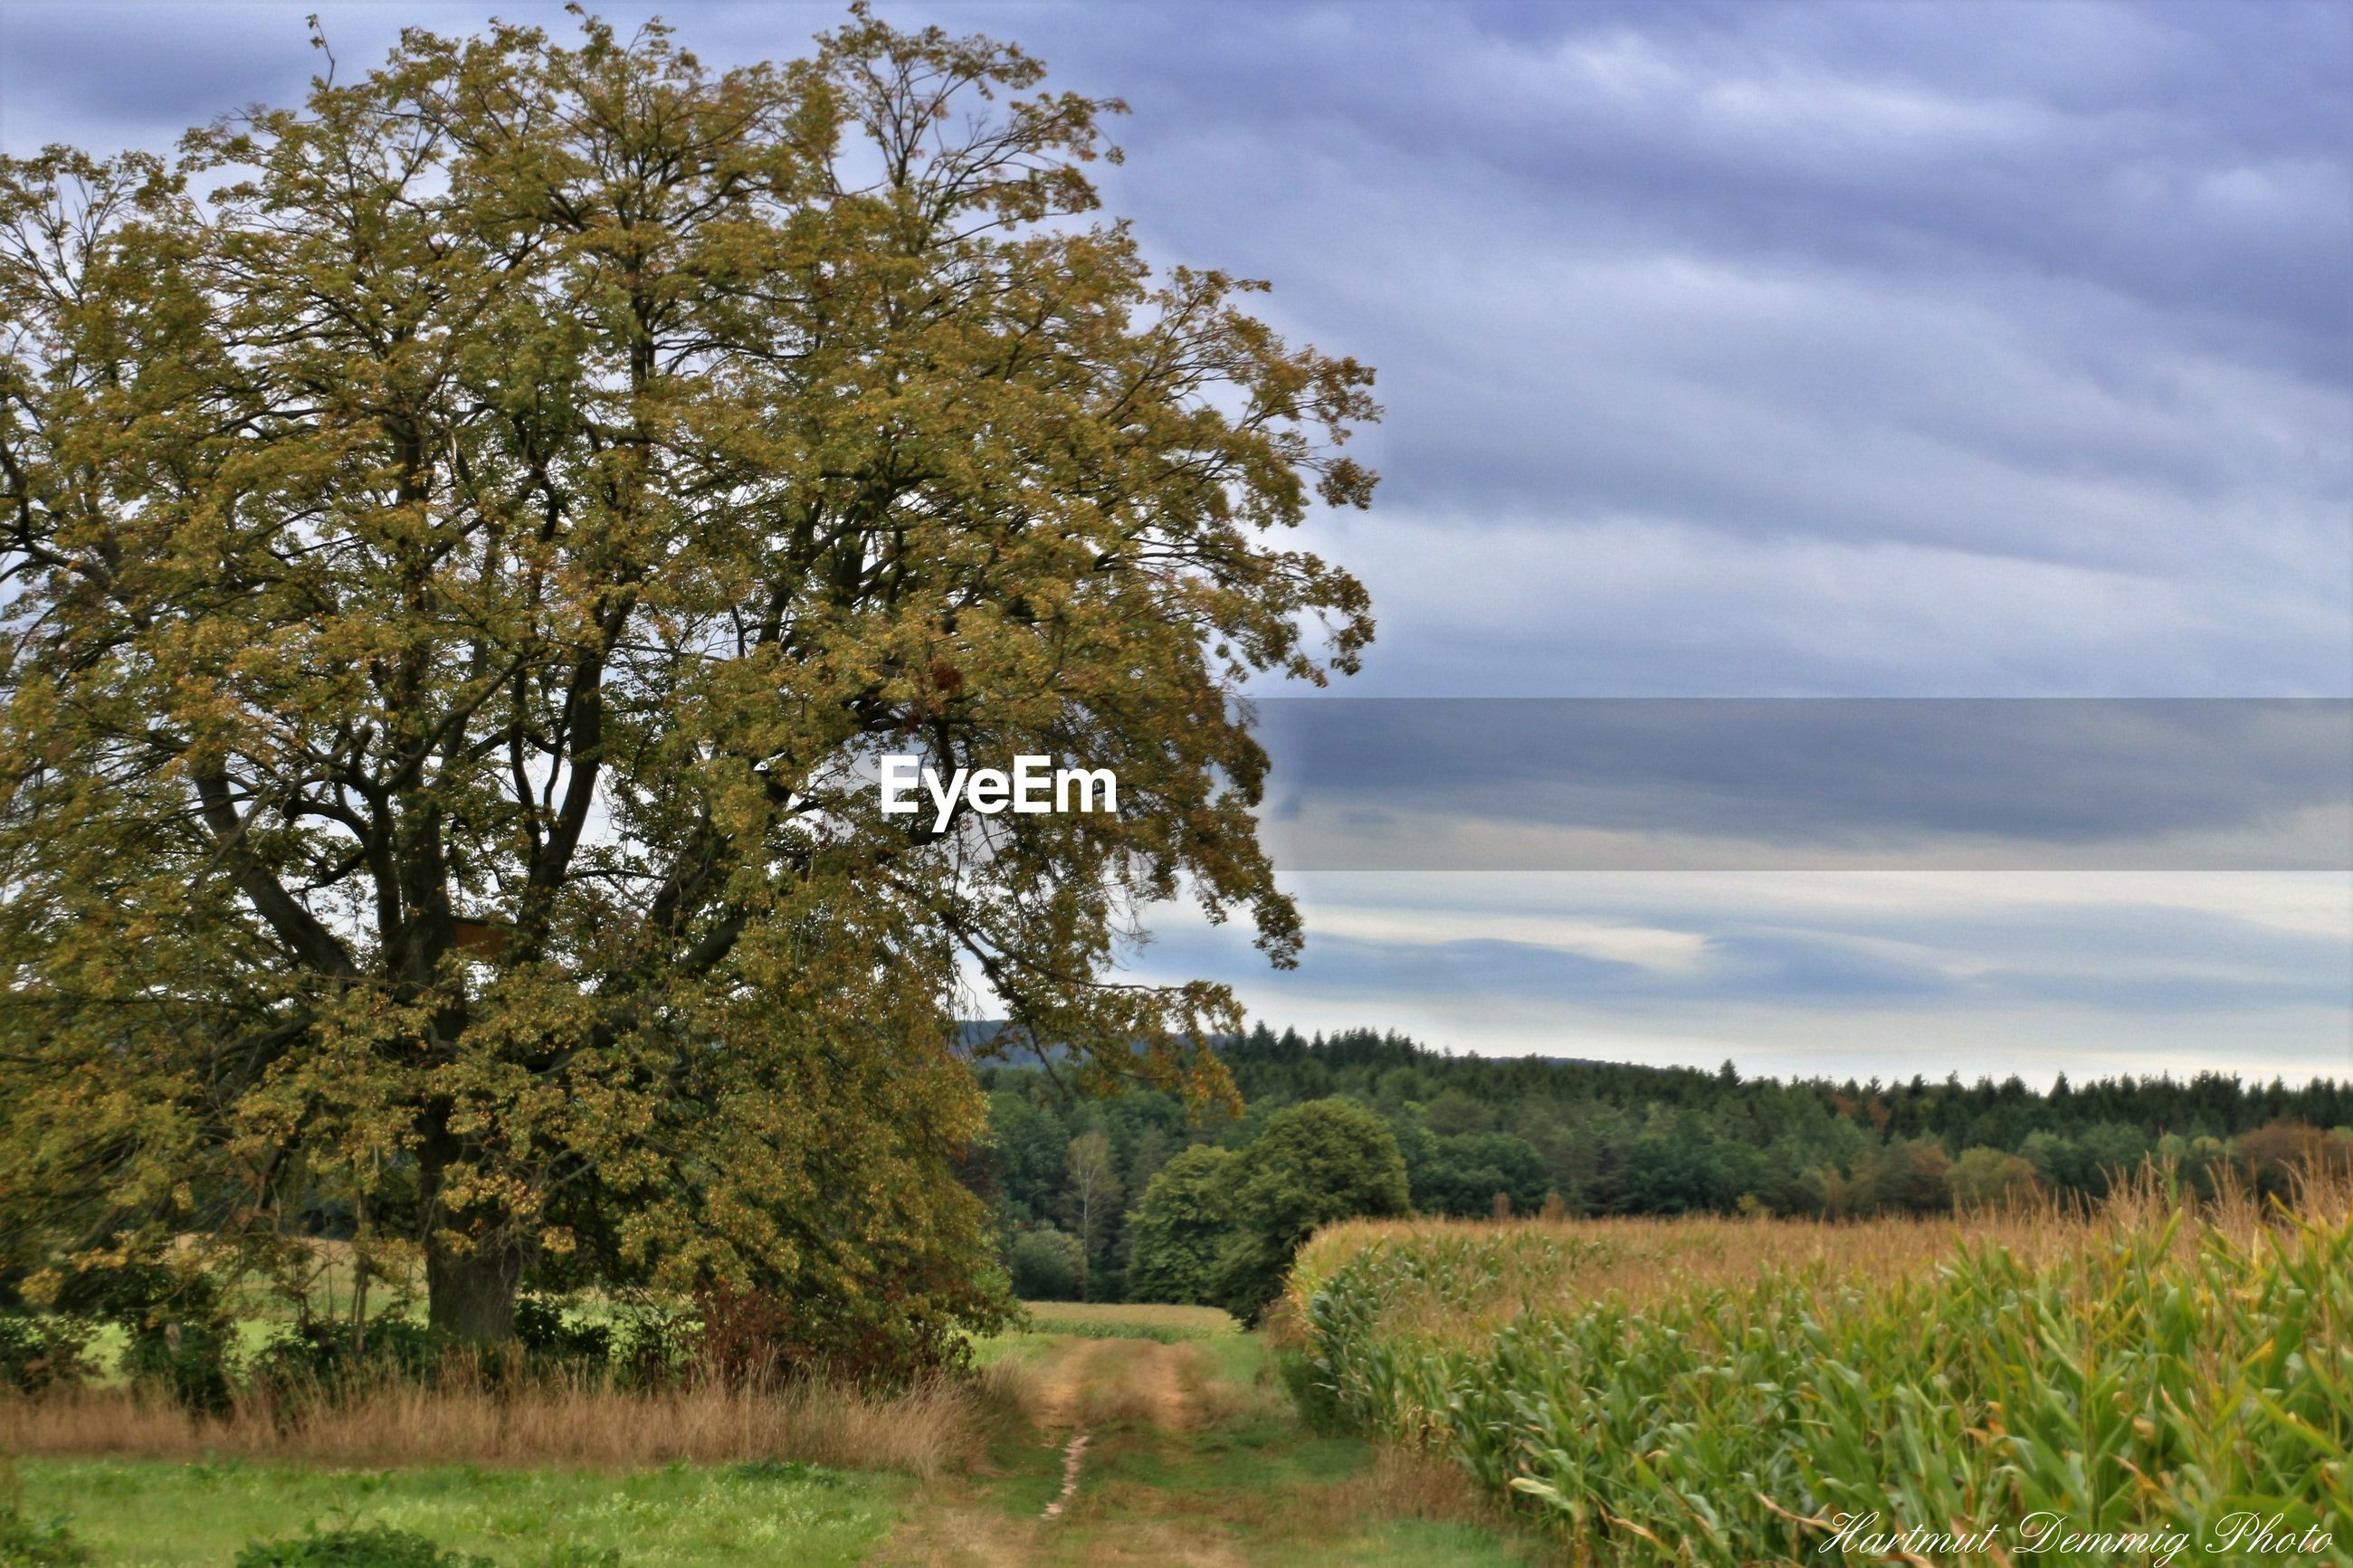 tree, tranquil scene, grass, tranquility, landscape, growth, field, sky, scenics, beauty in nature, cloud - sky, nature, plant, green color, grassy, non-urban scene, day, cloud, rural scene, footpath, countryside, outdoors, blue, no people, solitude, green, agriculture, cloudy, cultivated land, grass area, freshness, remote